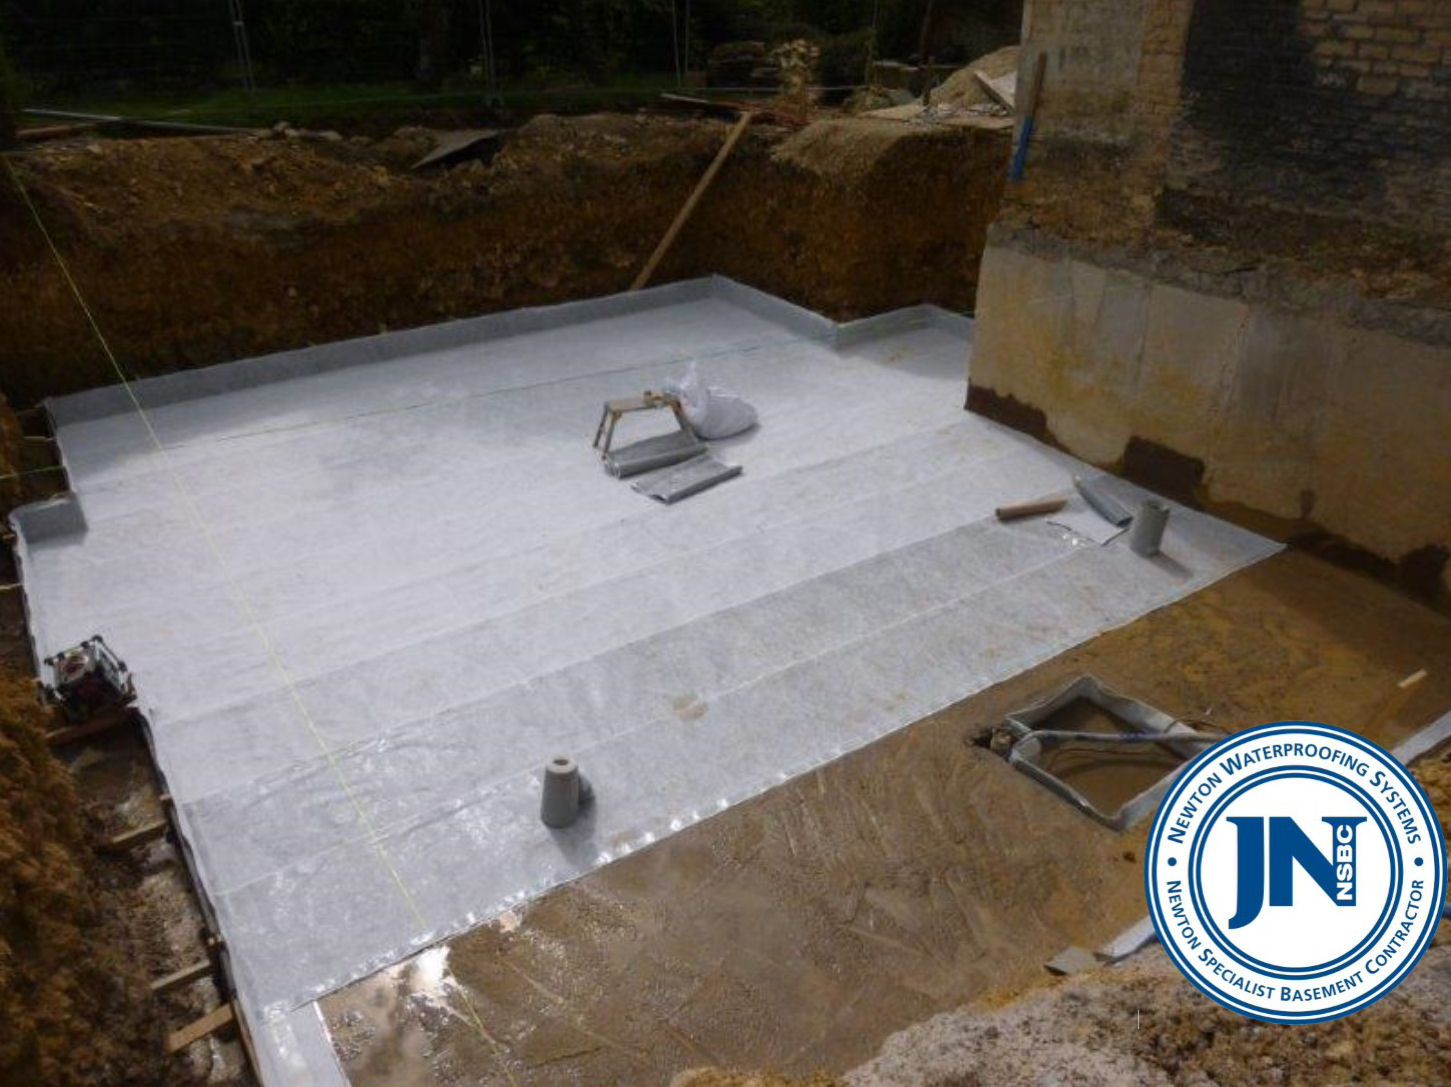 SYSTEM 400 EXTERNAL WATERPROOFING